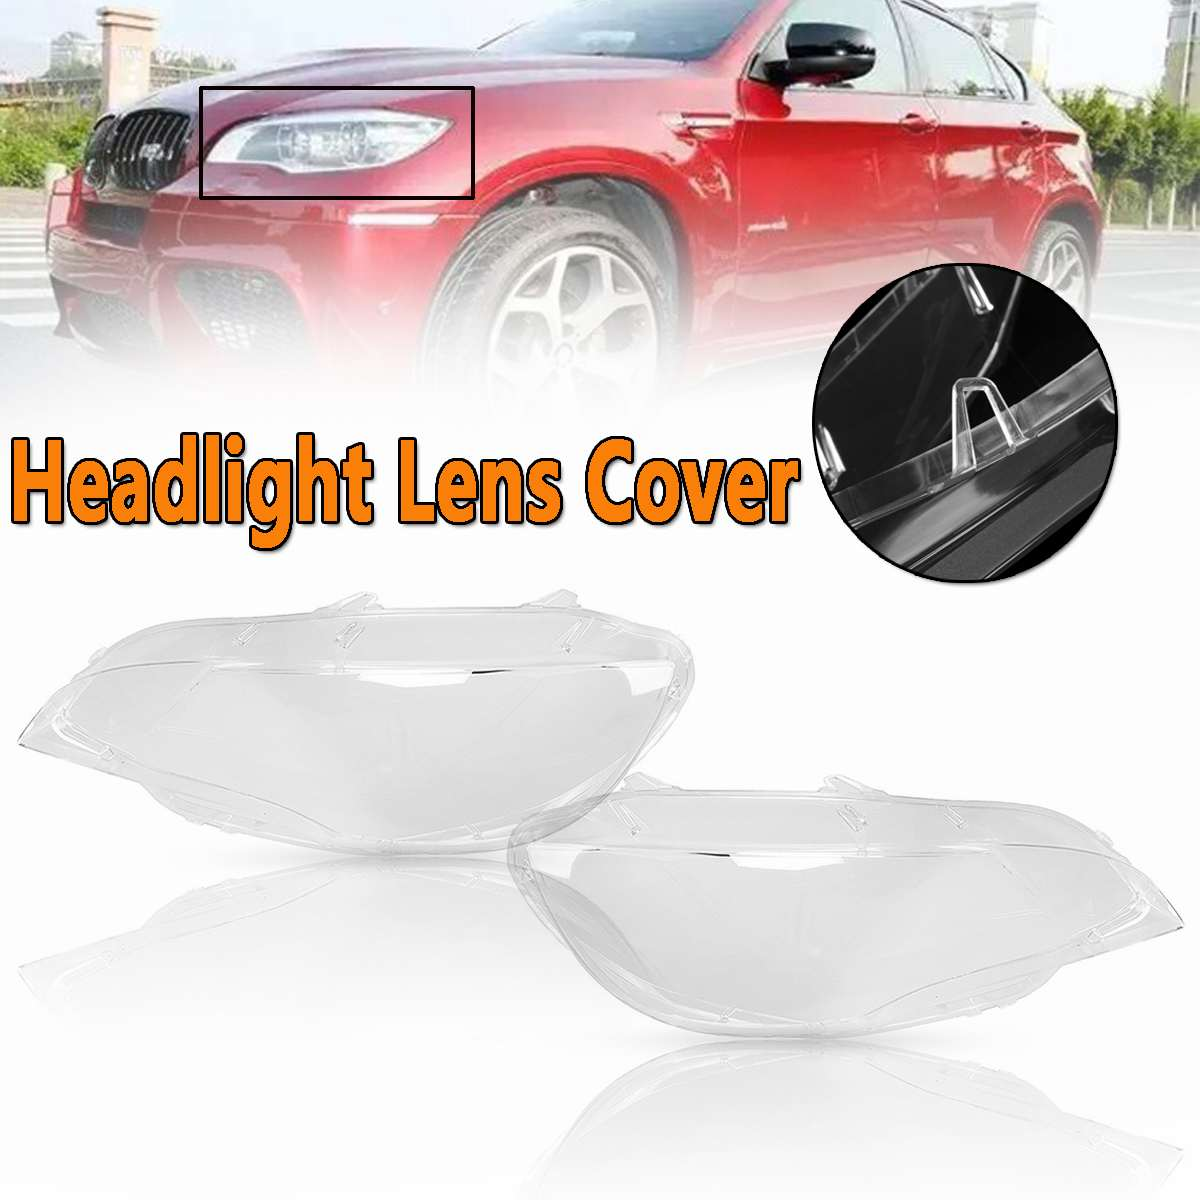 High Quality Car Headlight Lens Cover In Shell Head Lamp Cover For BMW E71 X6 2008-2014 Automobiles Headlamp Lense Cover KitHigh Quality Car Headlight Lens Cover In Shell Head Lamp Cover For BMW E71 X6 2008-2014 Automobiles Headlamp Lense Cover Kit